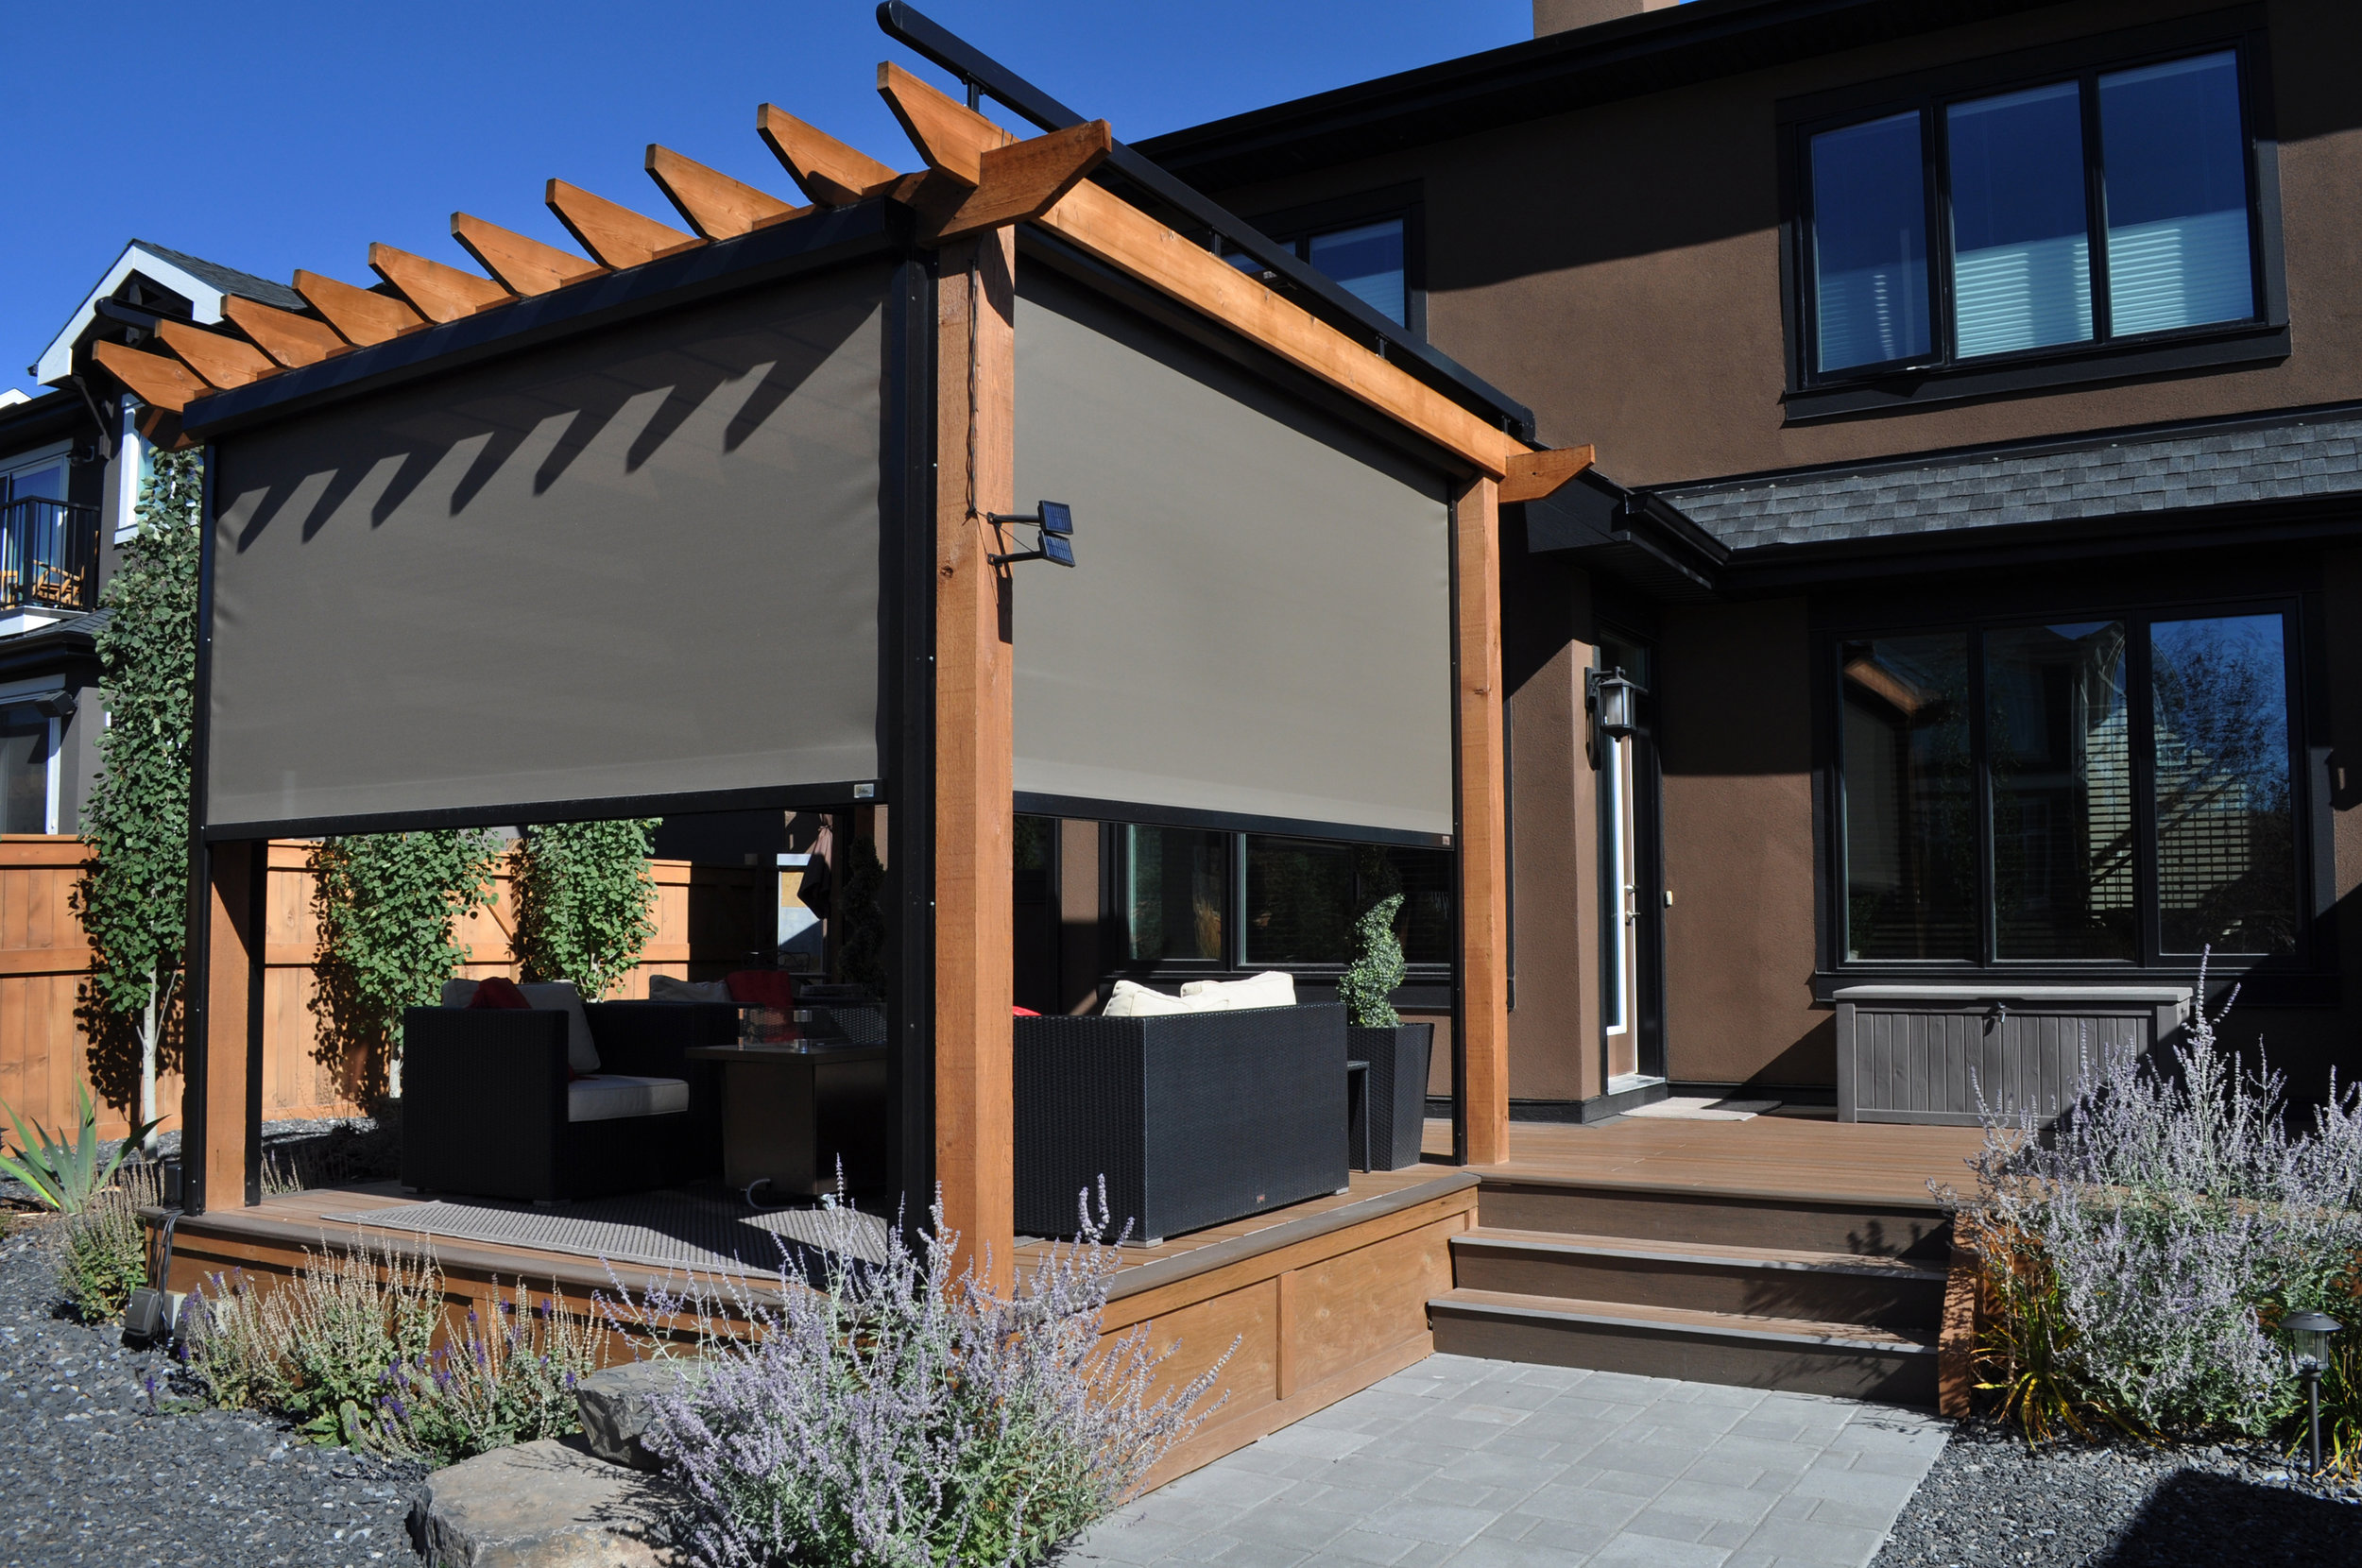 PERGOLAS - Adding solar screens to your pergola or gazebo creates an inviting outdoor space, adding protection from harmful UV rays and windy days.